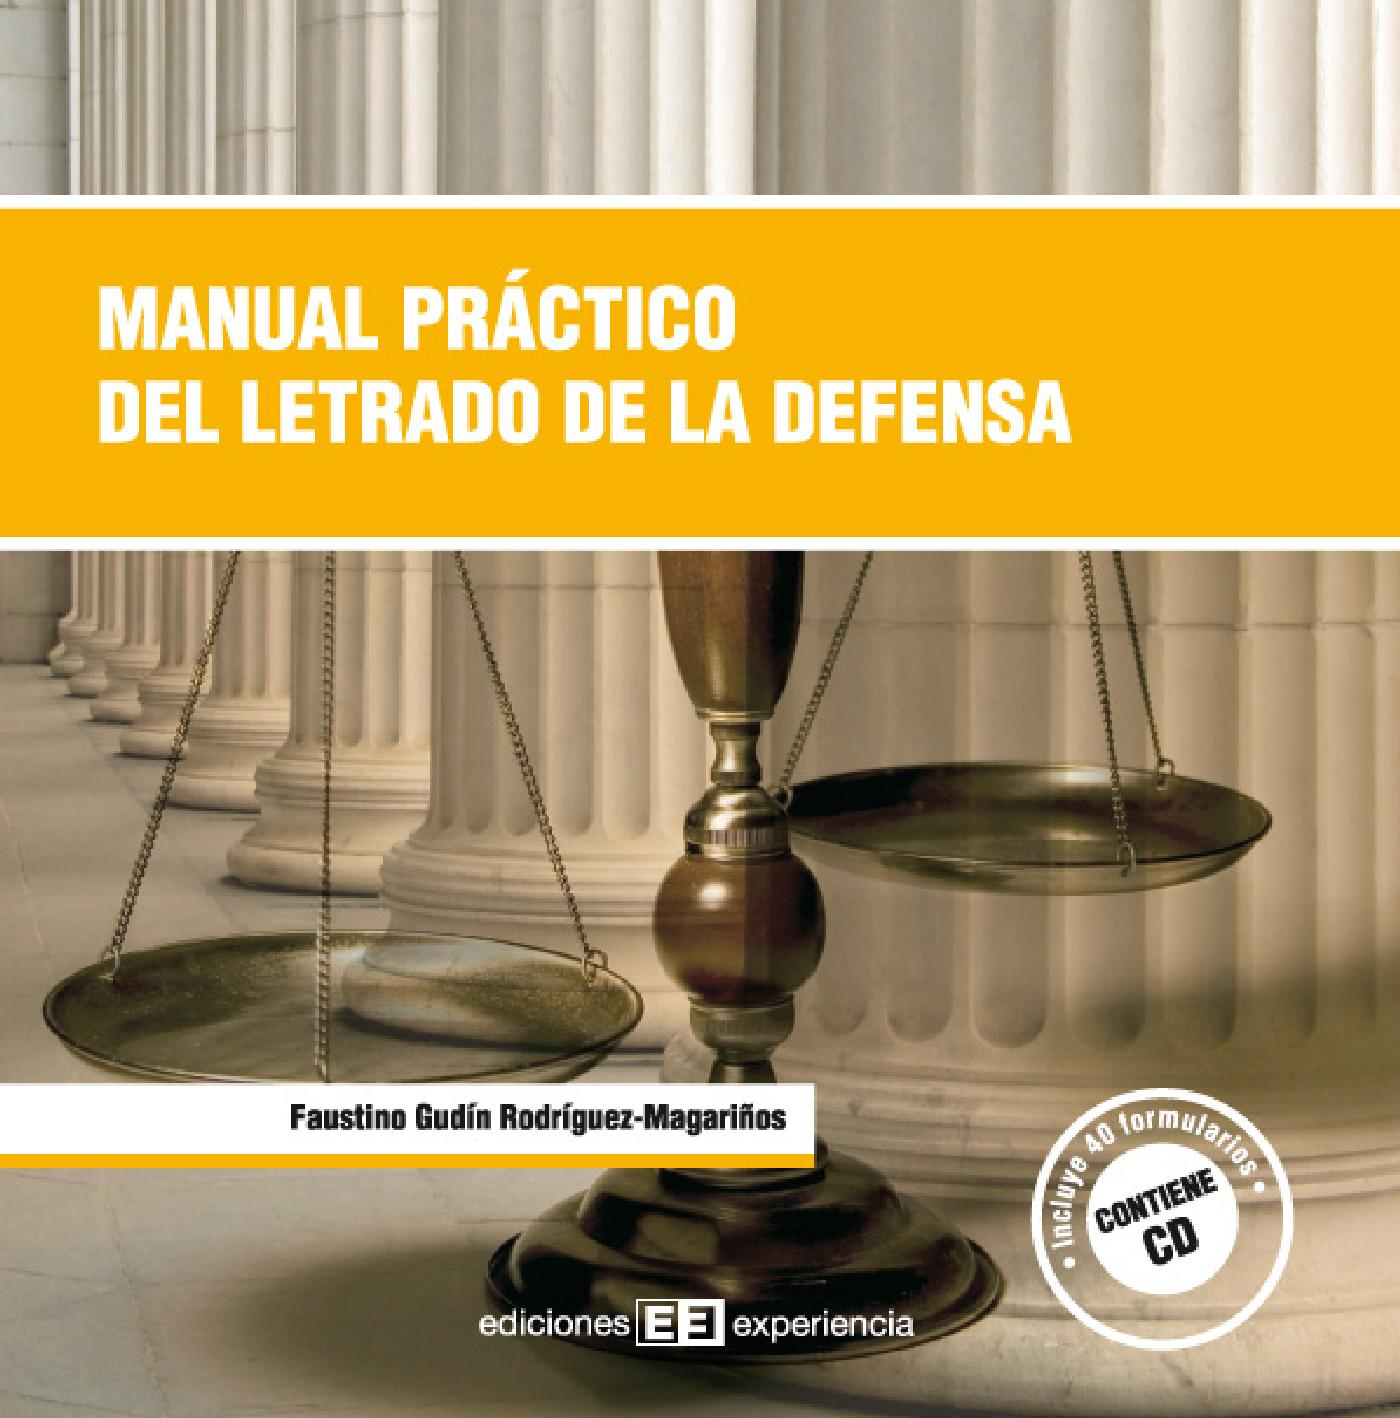 MANUAL PRÁCTICO DEL LETRADO DE LA DEFENSA